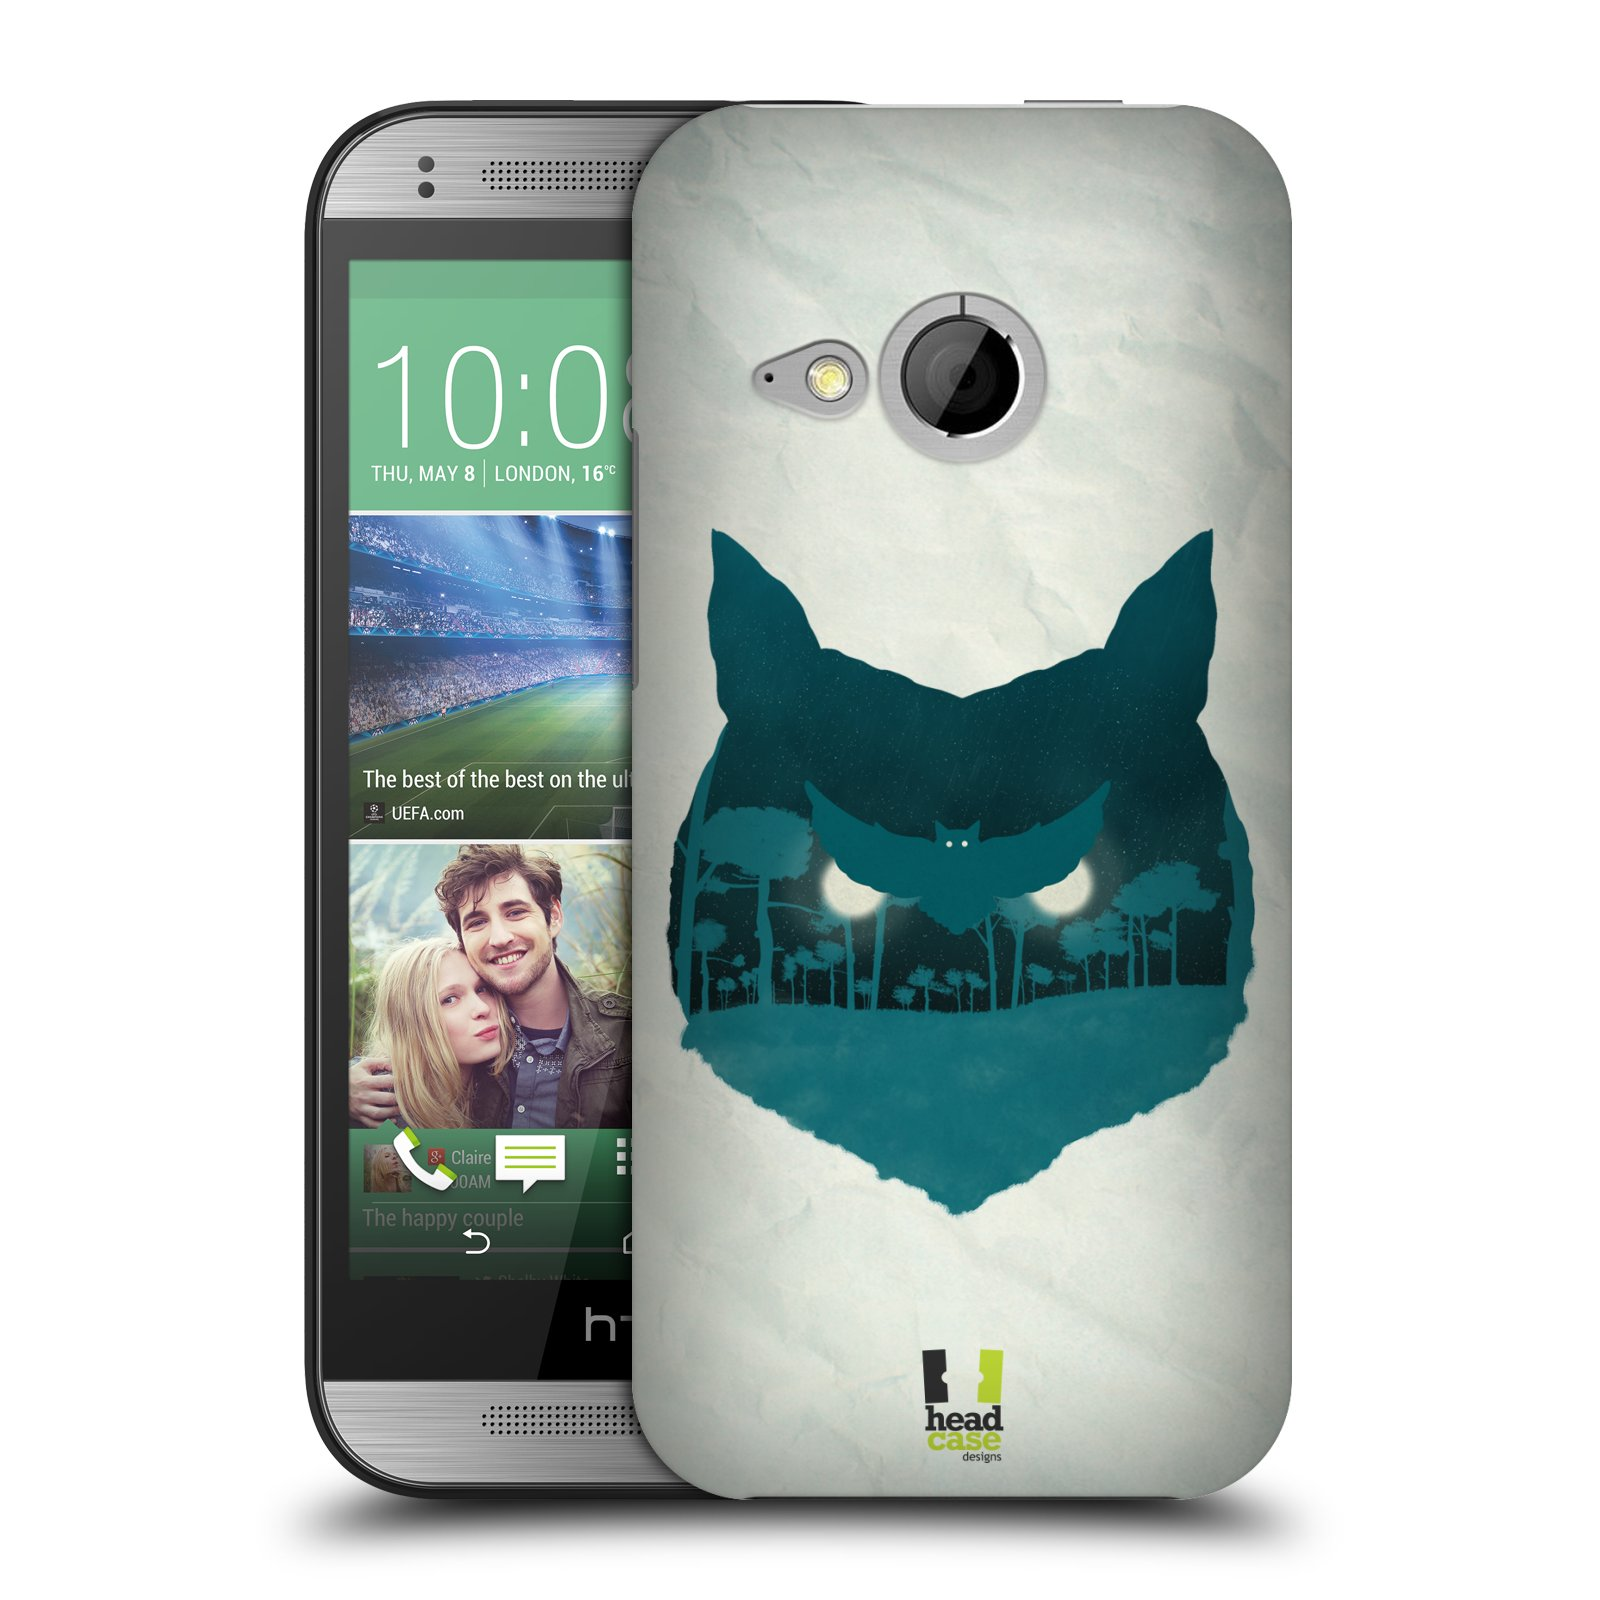 HEAD CASE DESIGNS NATURE OF ANIMALS HARD BACK CASE FOR HTC ONE MINI 2